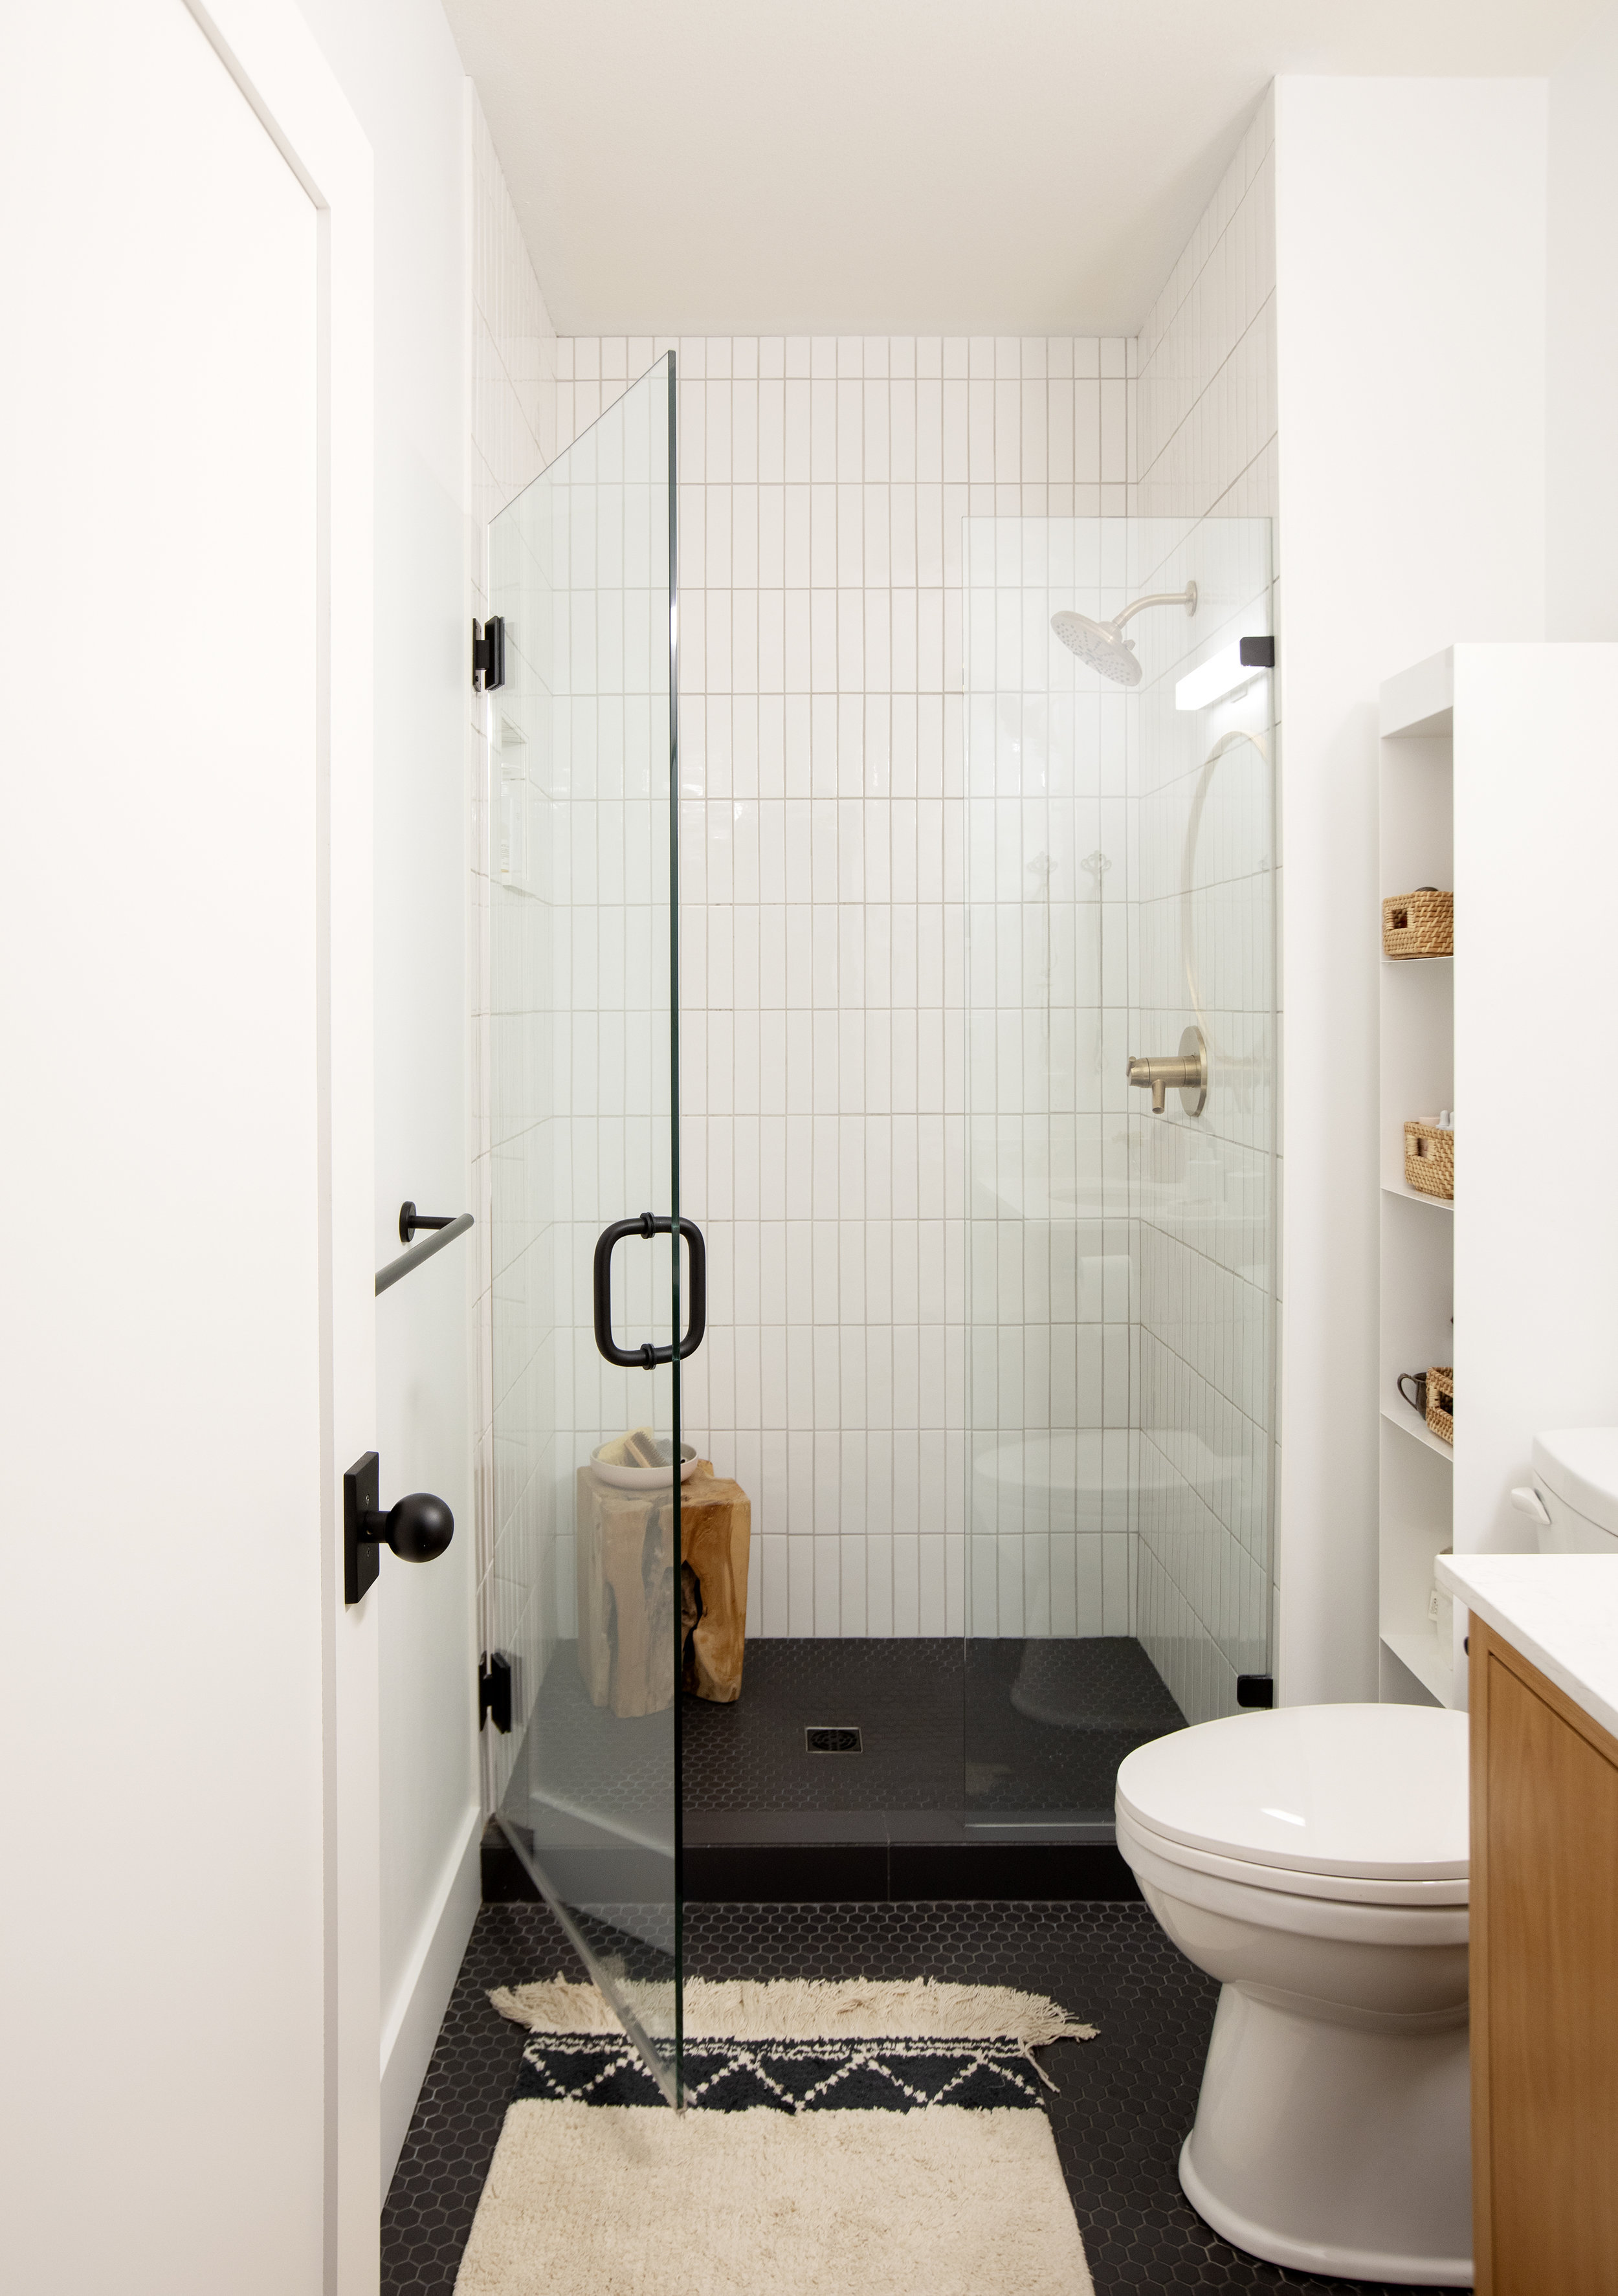 The bathroom at Prince Edward Street includes a large walk-in shower with vertical rectangular accent tiles.